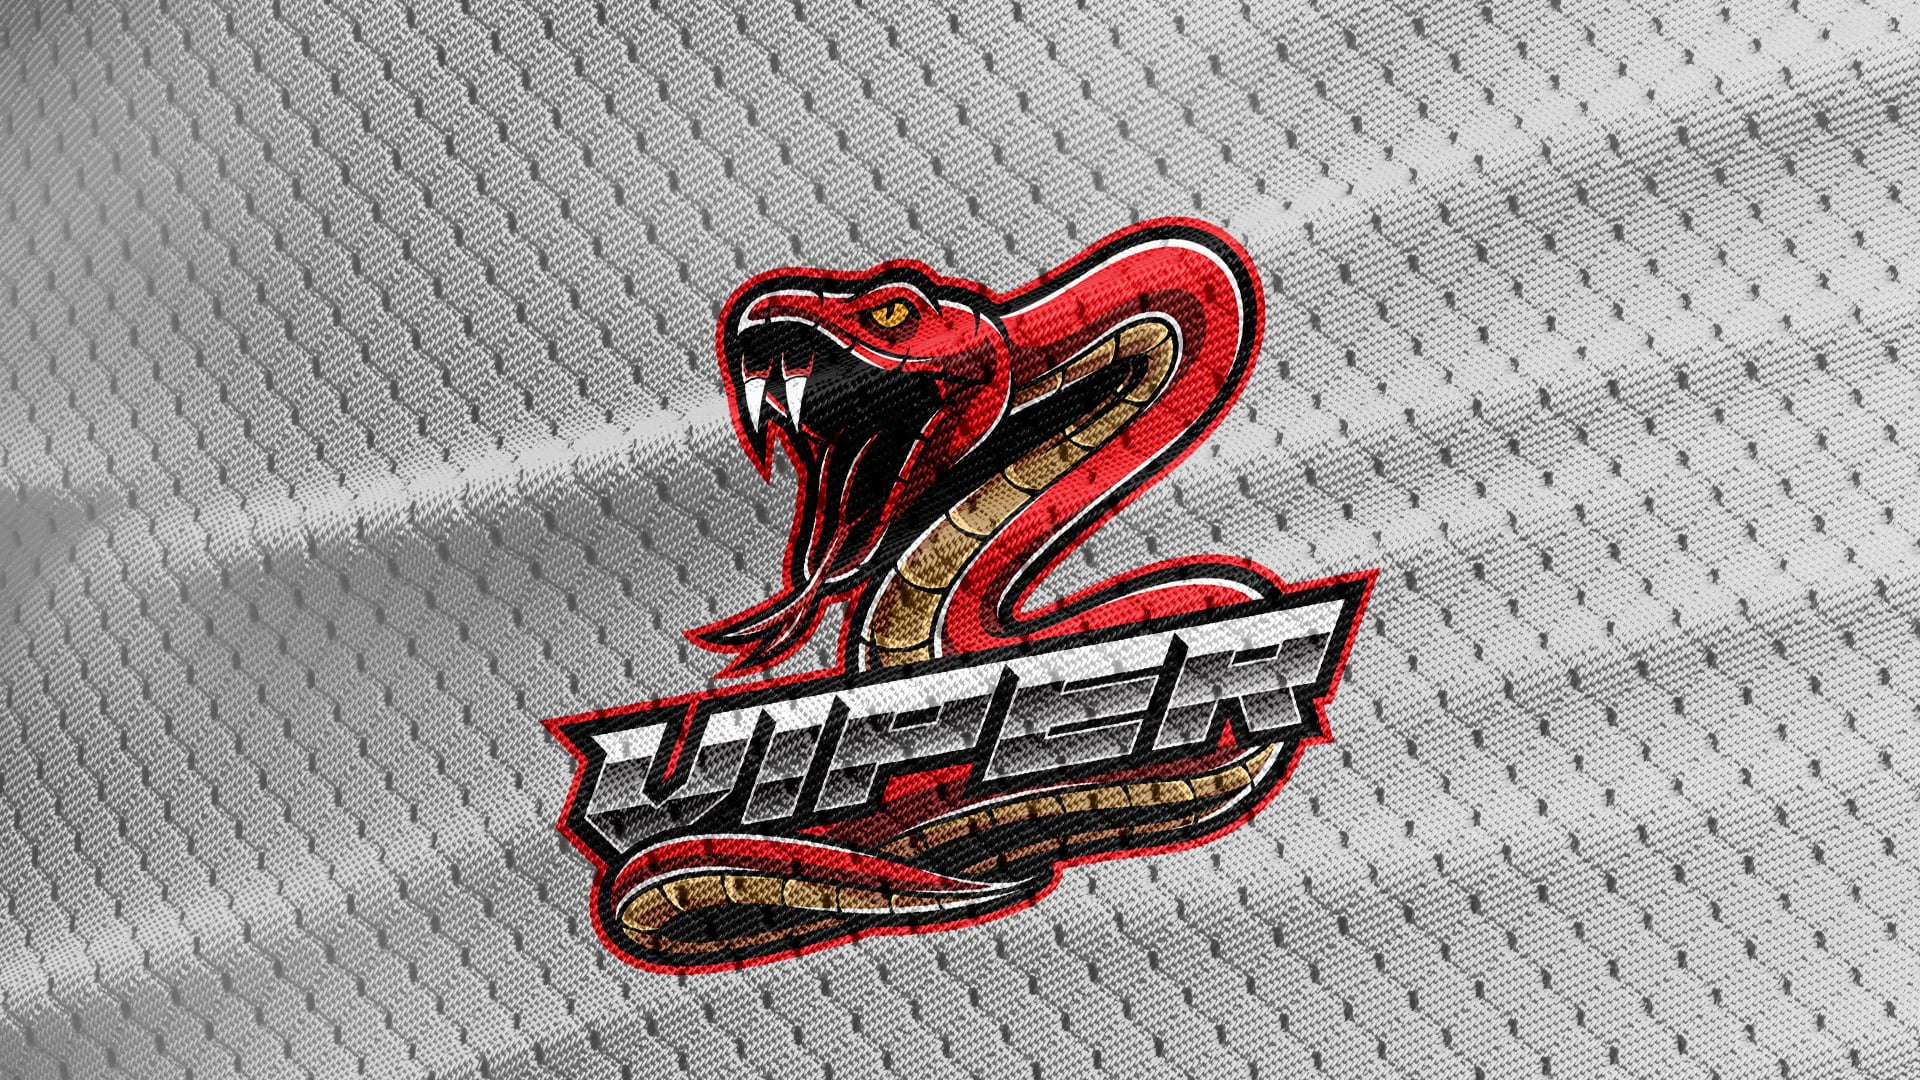 Gray-Jersey-Texture-Free-Viper-Logo-Masco-Downloadt